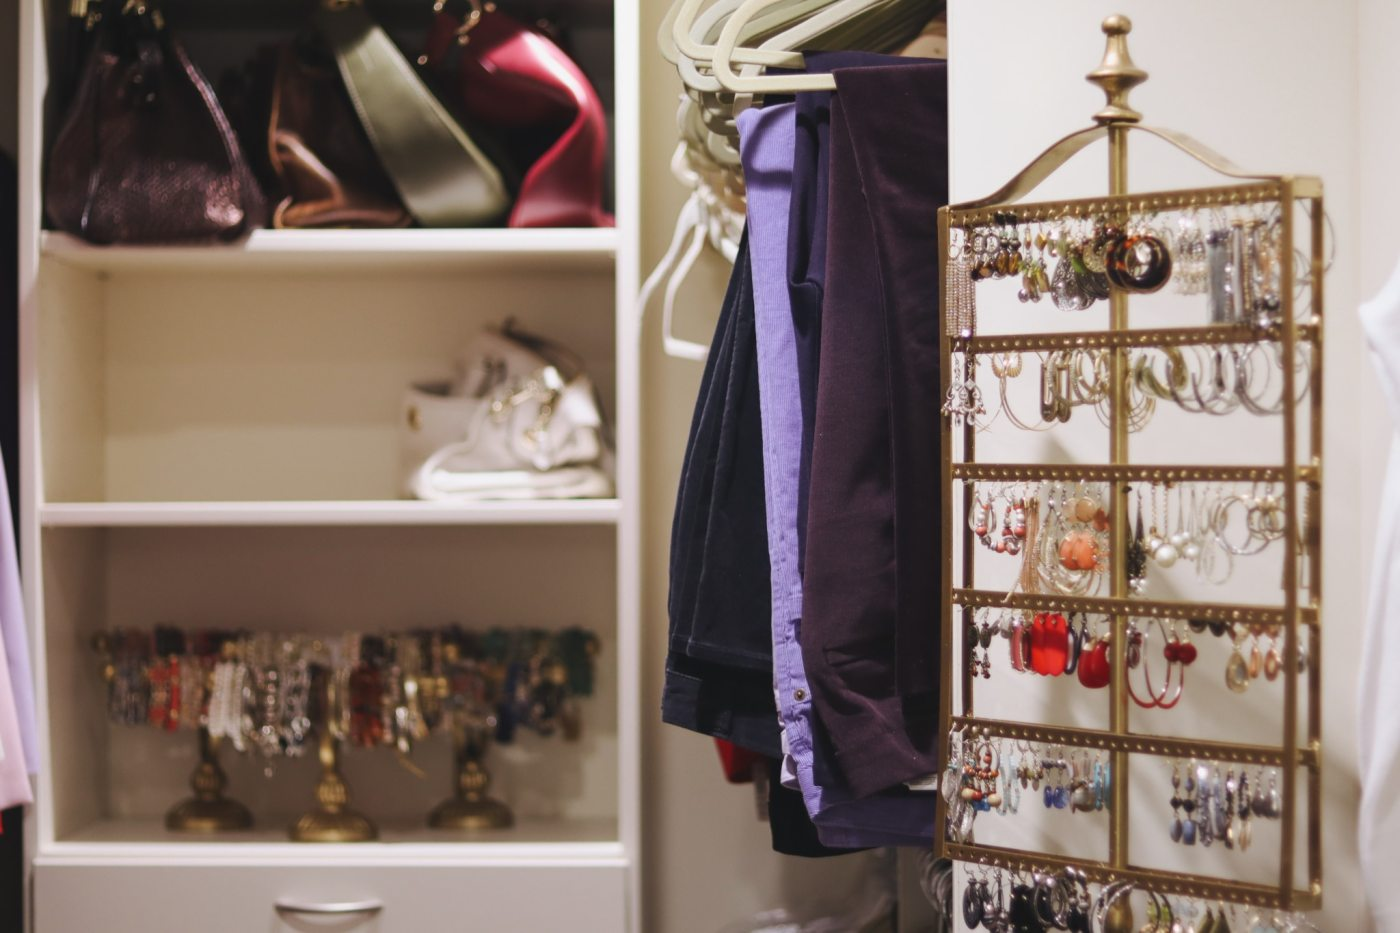 organized closet. Check out Closets by Design at the Birmingham Home Show